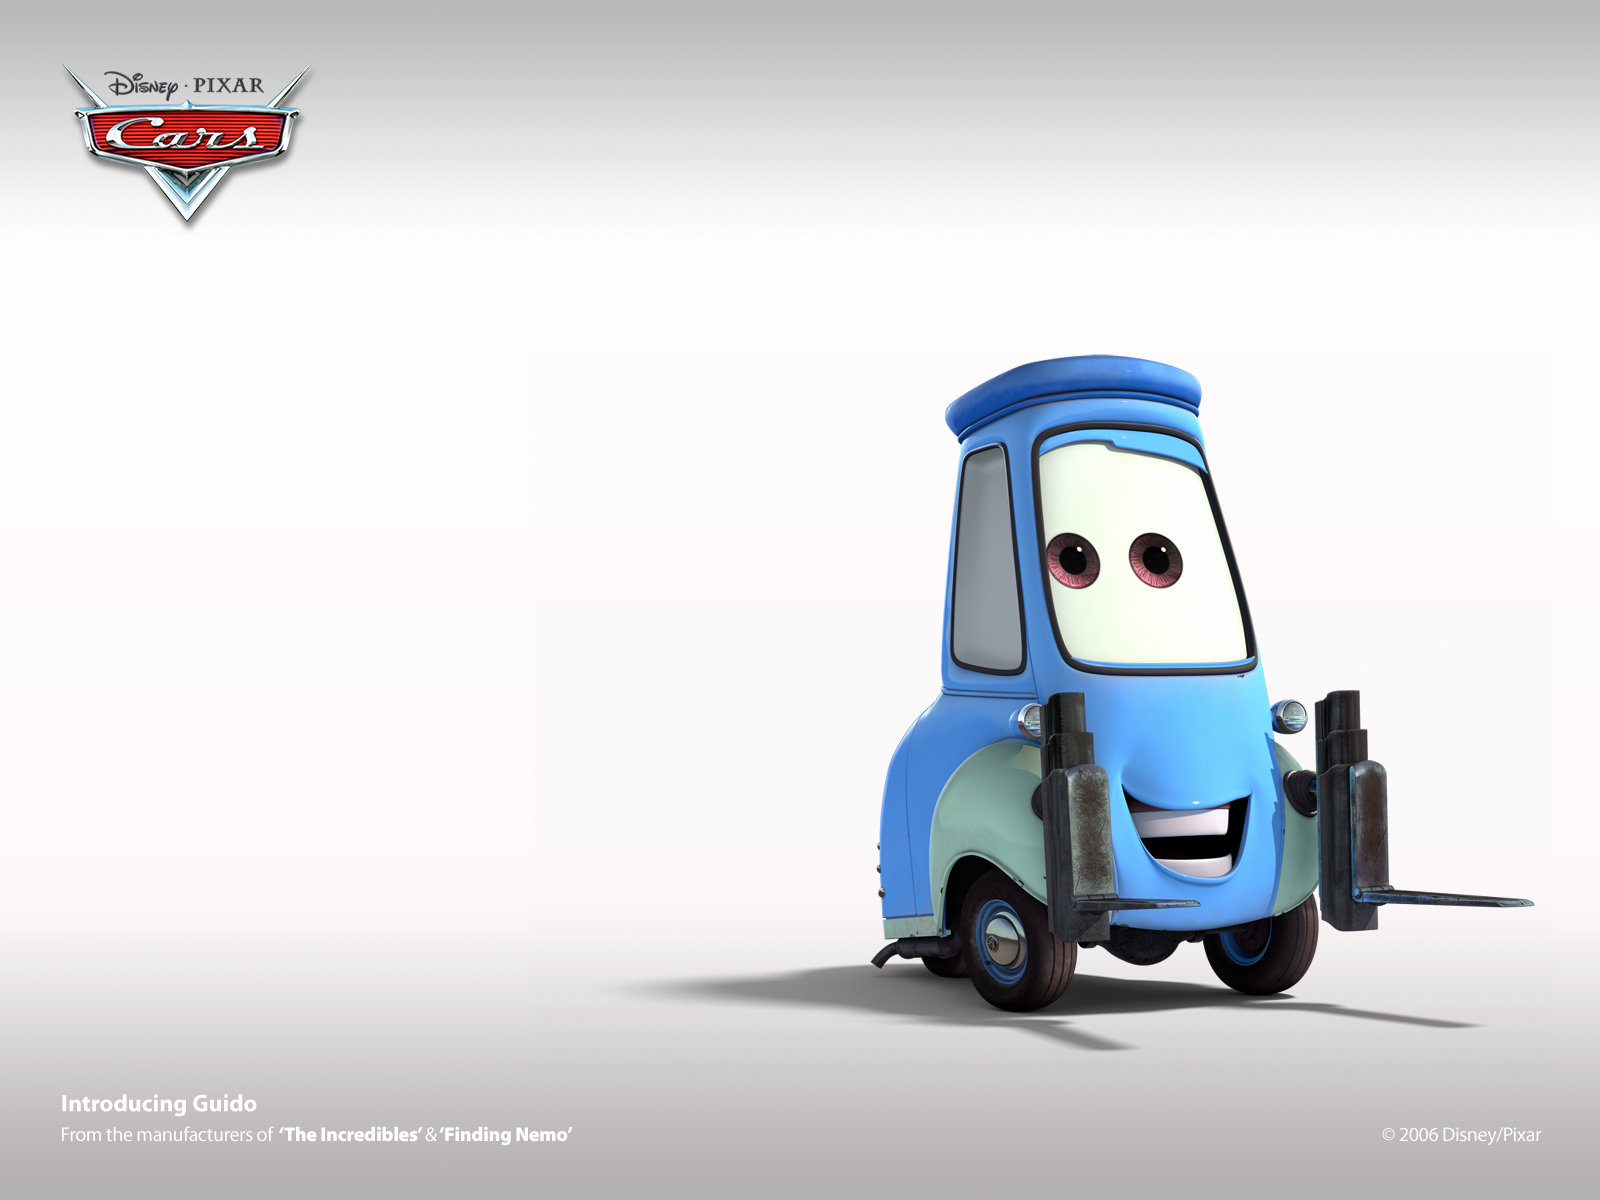 cars disney pixar - photo #30